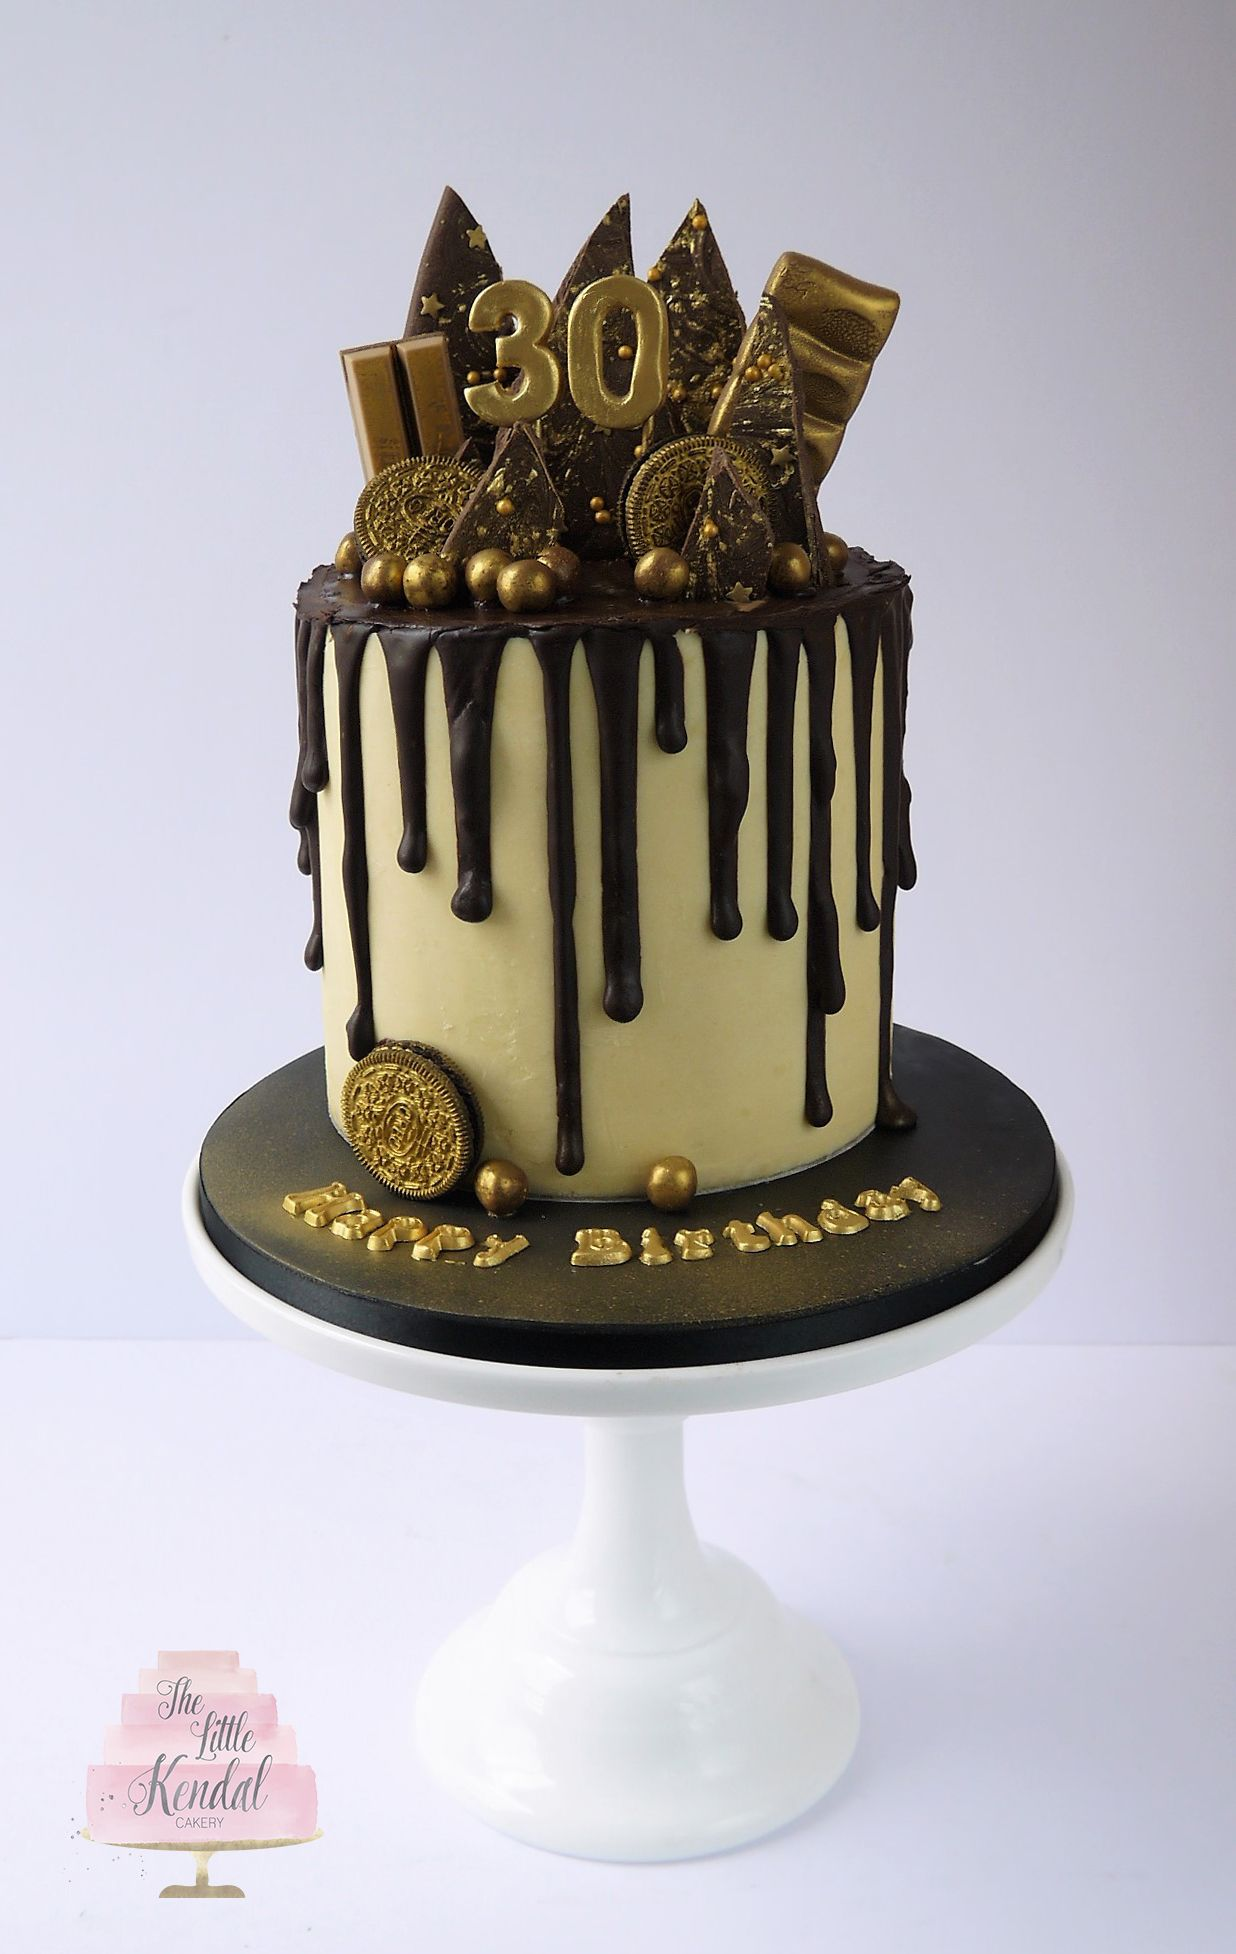 Kuchen Deko Gold Harry Potter Kuchen Deko Harry Potter Kuchen Mainbacken